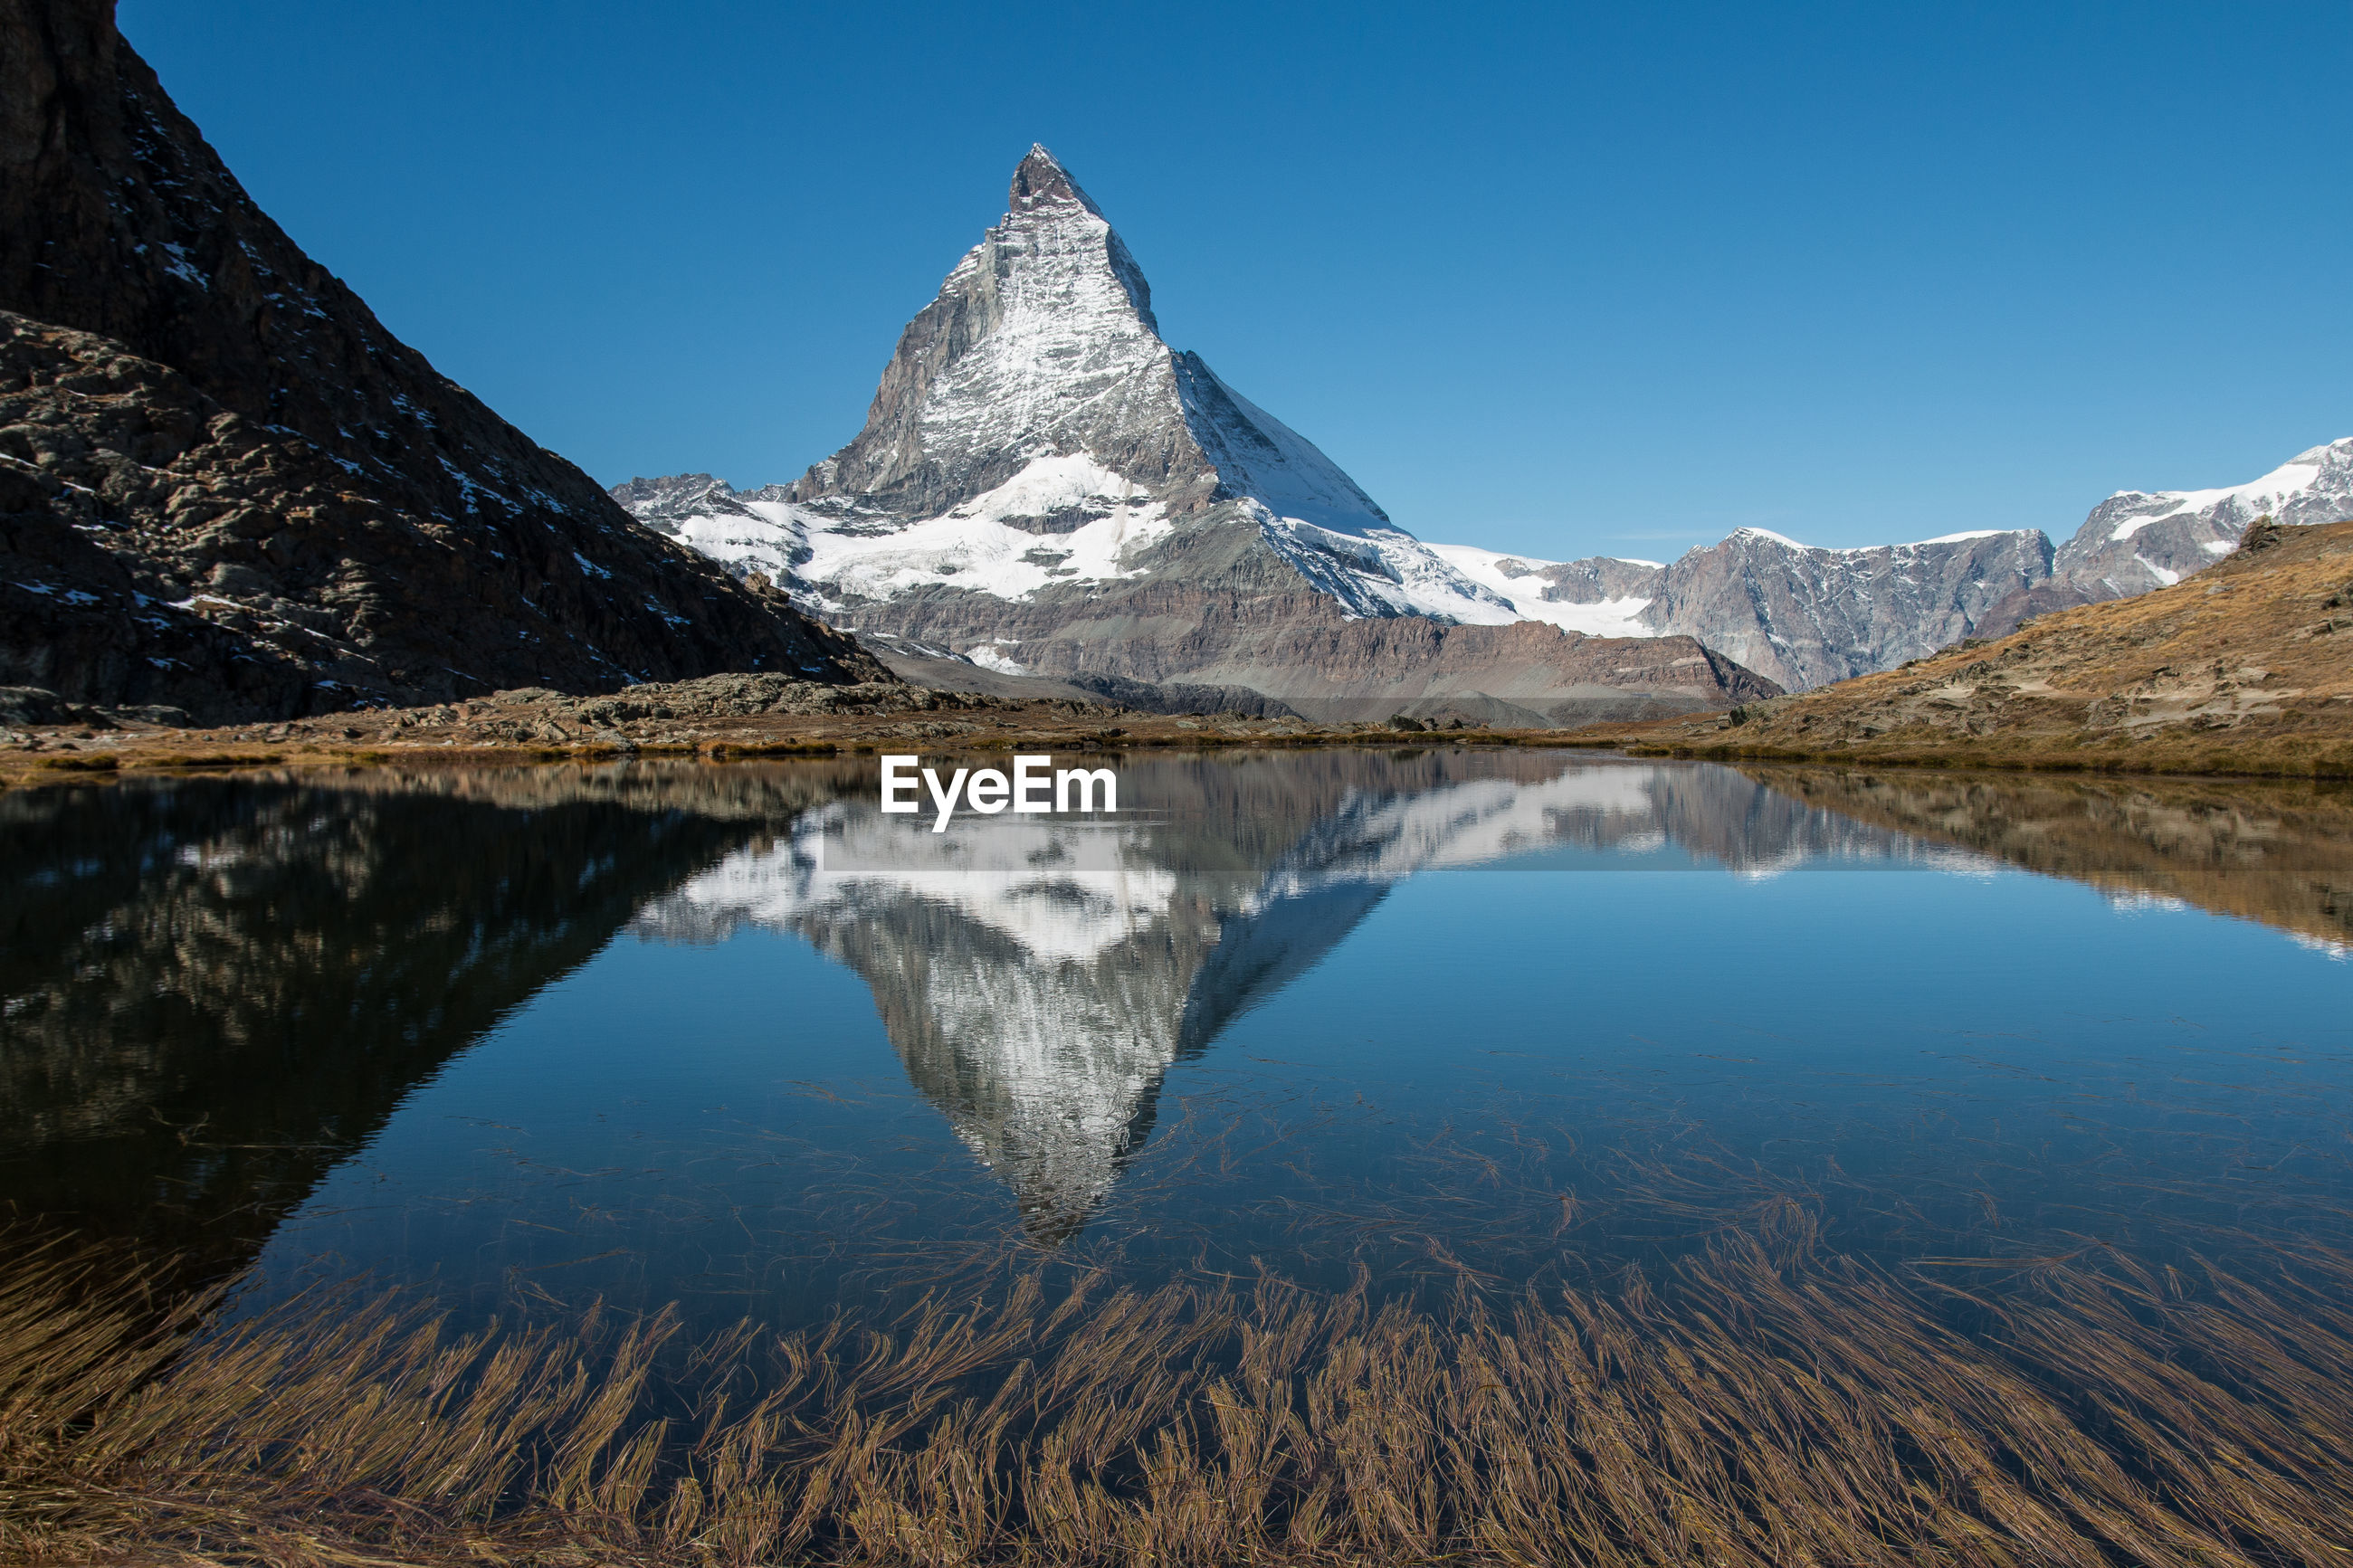 Reflection of mountain peak in calm lake